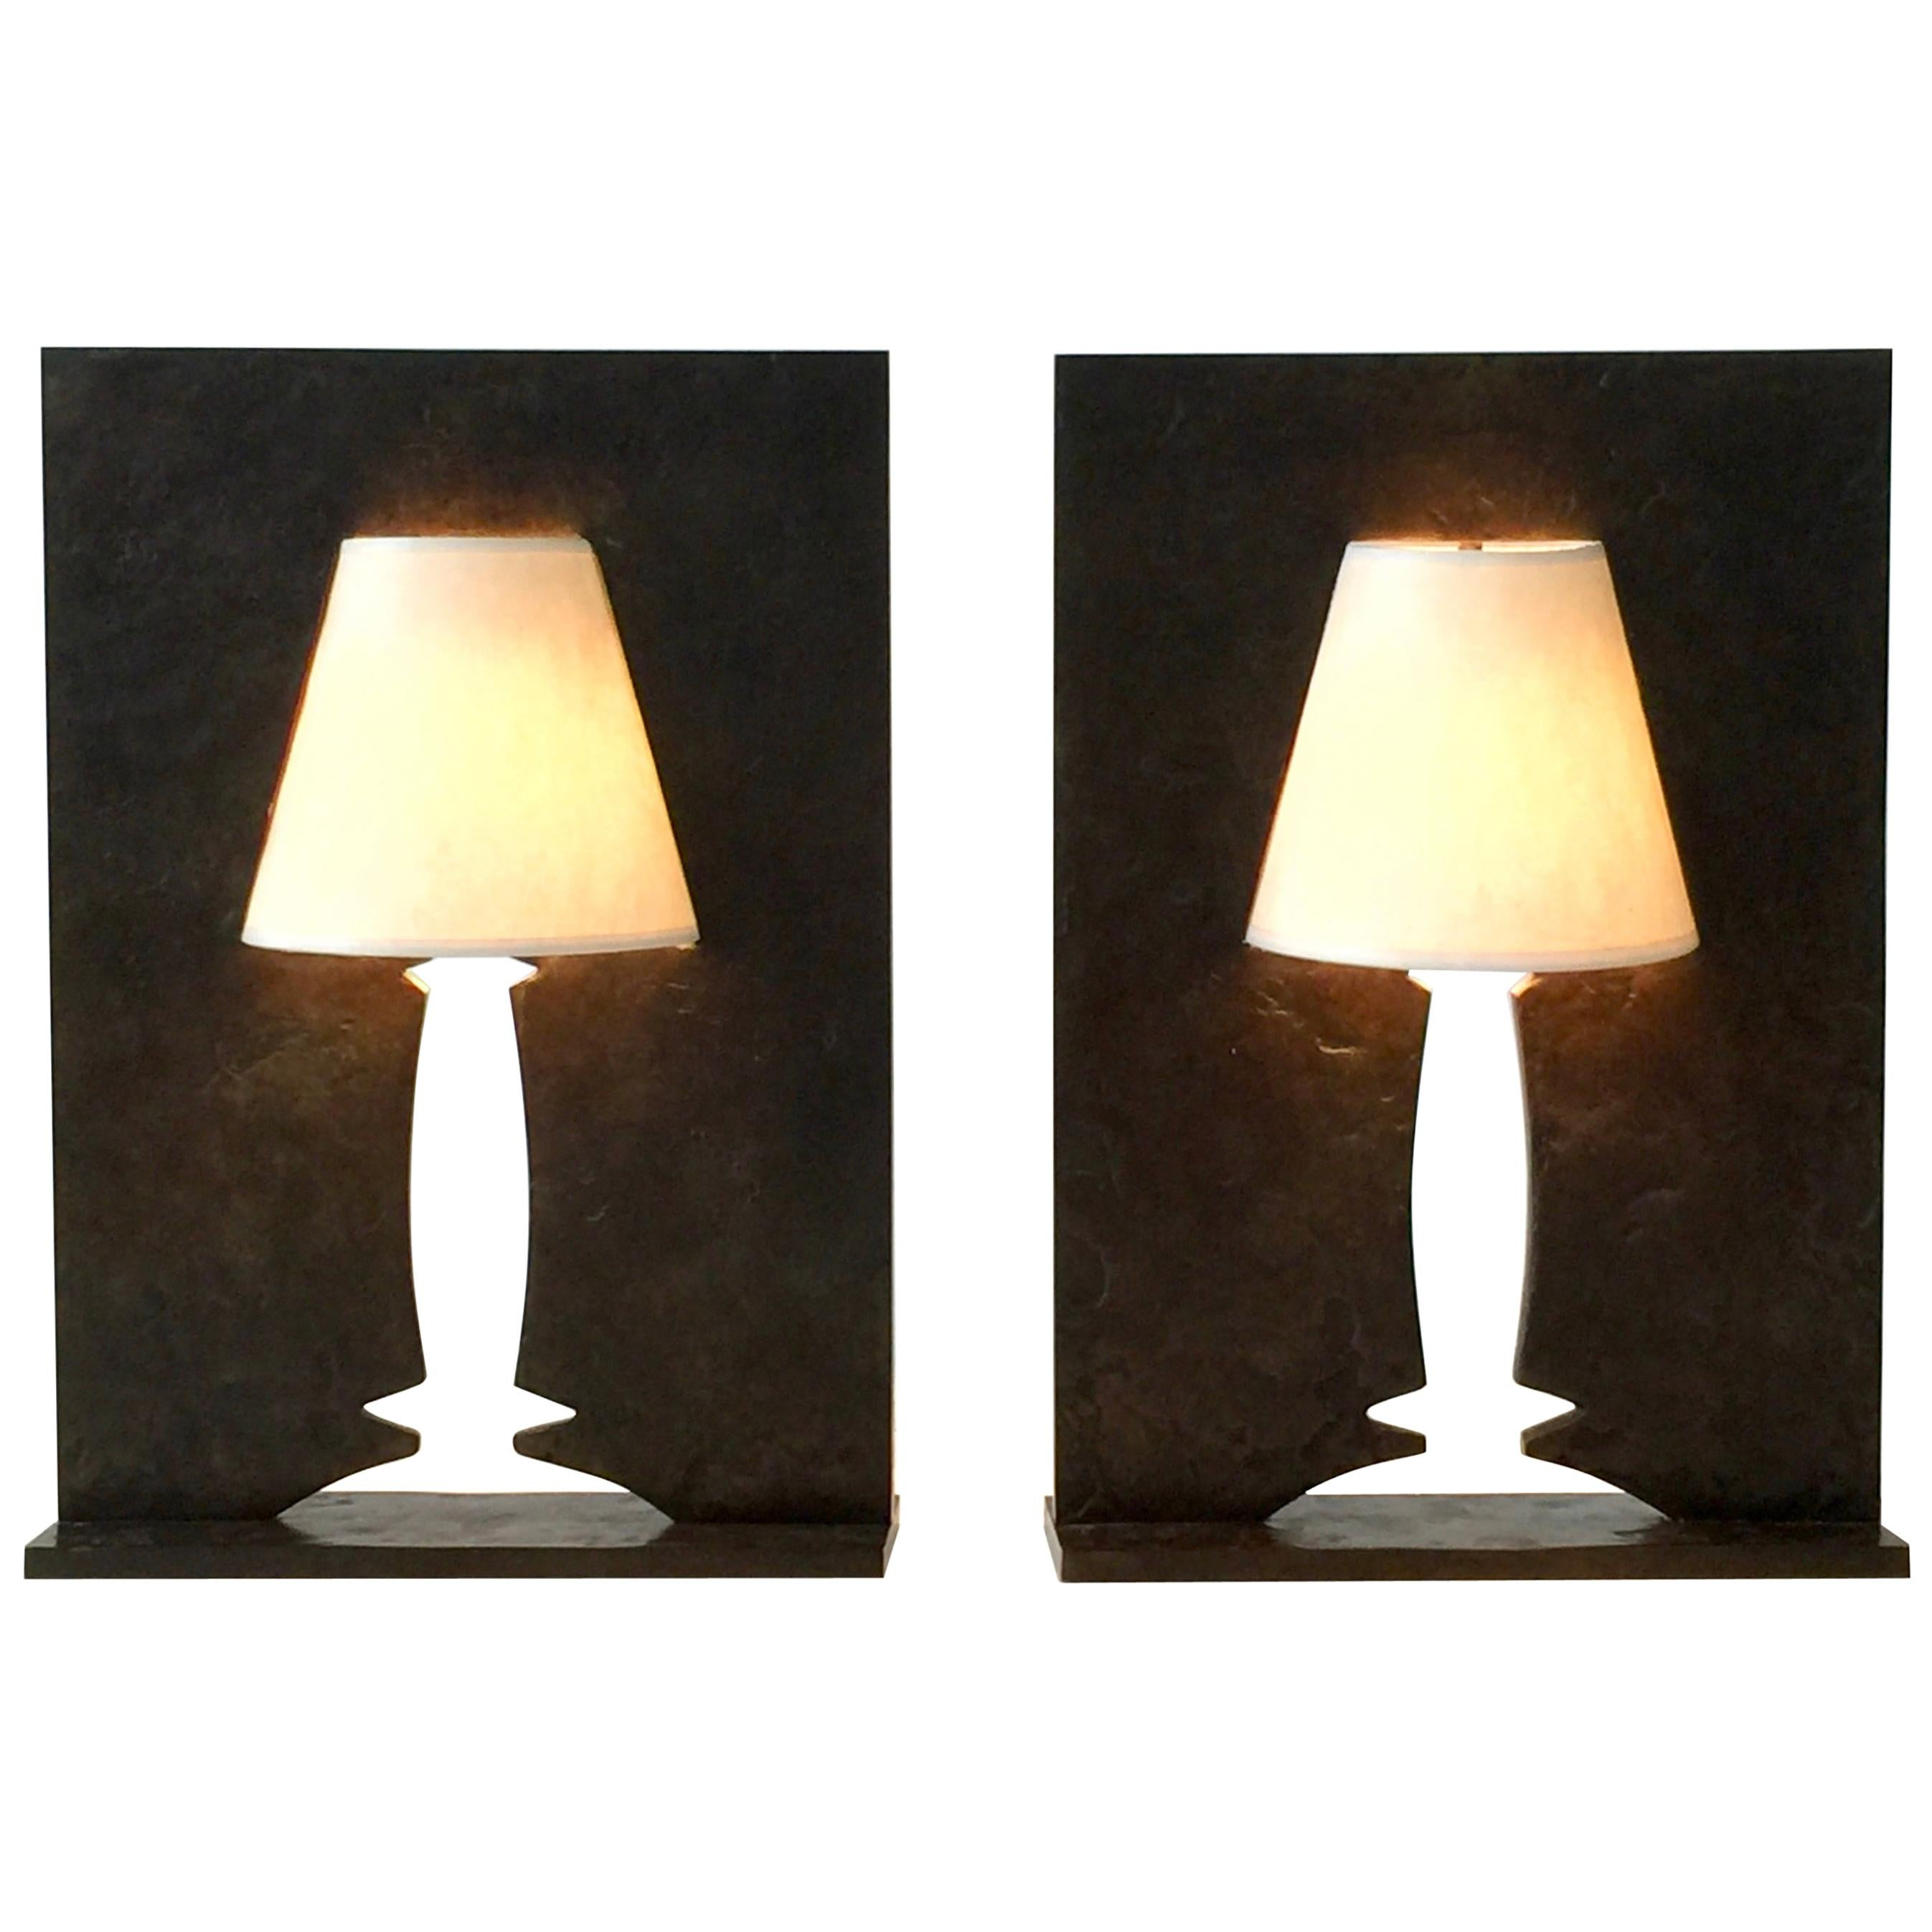 Pair of Limited Edition 'Allusion' Table Lights by Hubert Le Gall, 1999